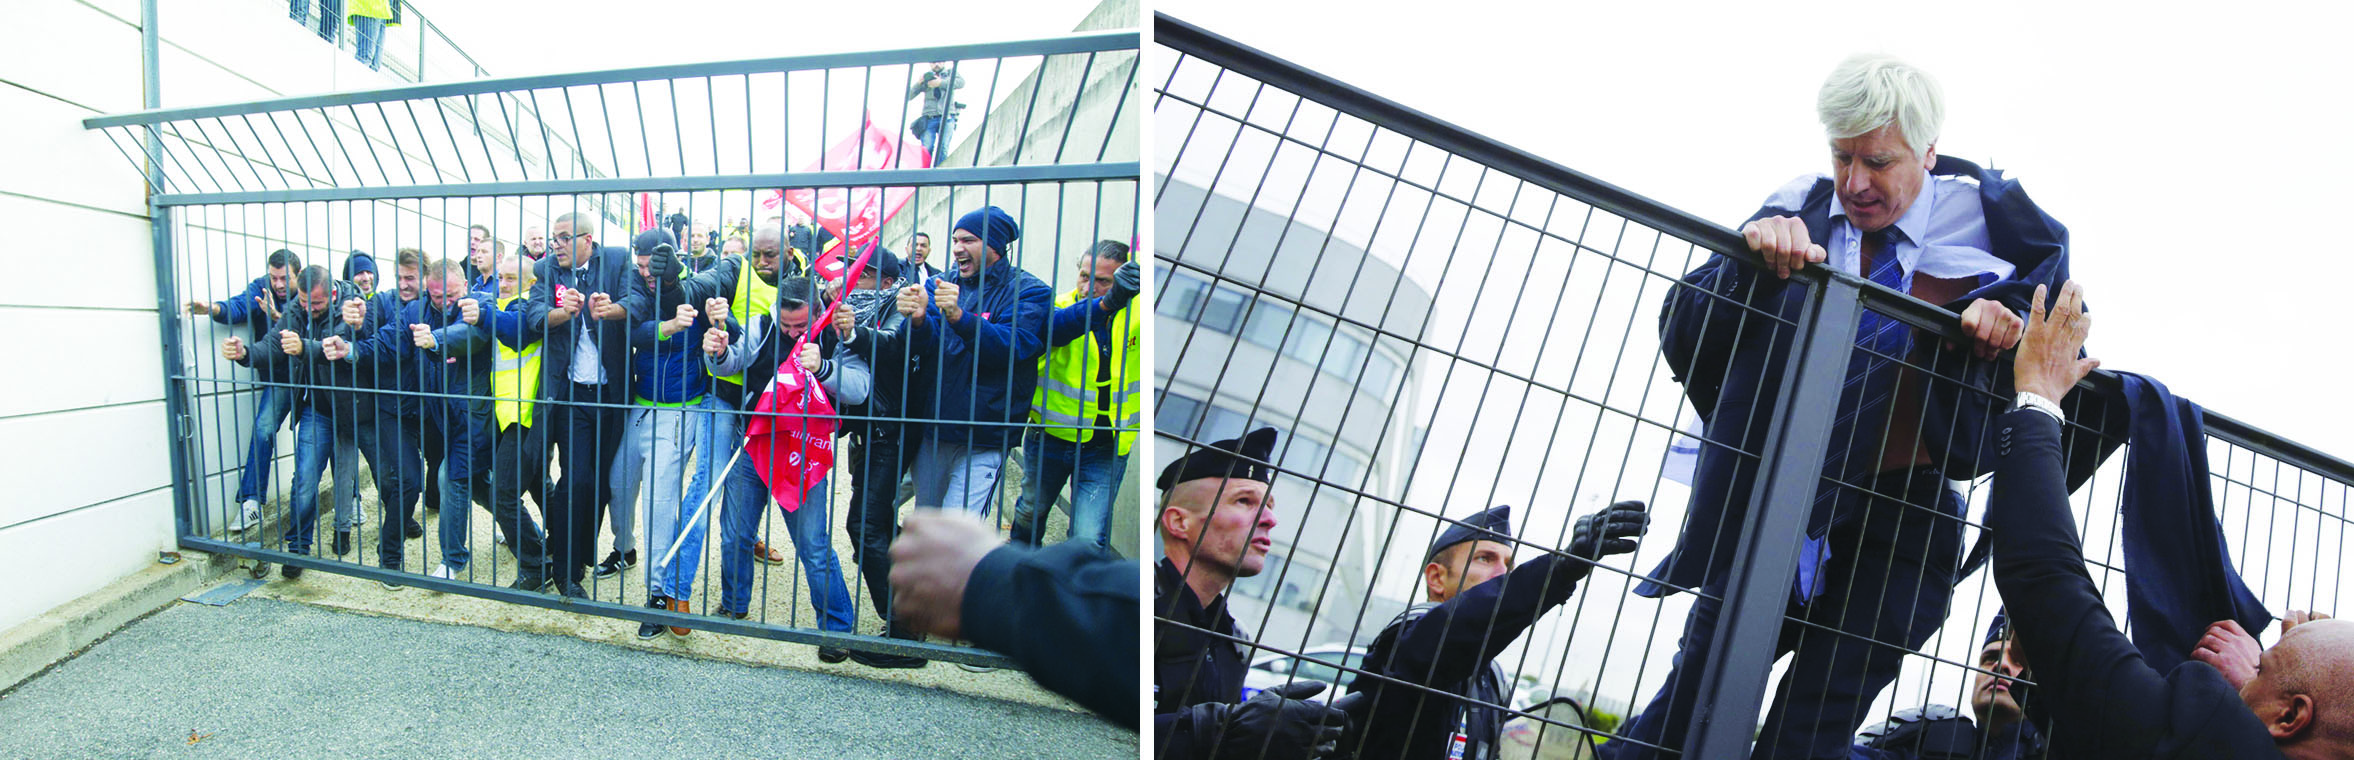 "Today, capitalist rulers from France to Australia are cynically seizing on the terrorist attacks to whip up patriotic fervour and a supposed ""common identity"" as people who embrace ""liberal democratic values."" This serves to mask the fact that the capitalist ruling class exploit their ""own"" working class. Above Left, 5 October 2015: Air France workers storm through the gates of the company's headquarters after the capitalist bosses announced the retrenchment of 2,900 workers. Angry workers ripped the shirts off a couple of high-ranking executives and were about to dispense a healthy dose of workers' justice to these greedy corporate thugs when the terrified bosses were rescued by security guards and climbed over a fence to escape (Above Right). Today's post-attacks patriotism is meant to not only dampen such class struggle but the yet more added powers that the capitalist authorities are giving themselves in the name of fighting terrorism will in the end be used against the workers' movement, leftists and anti-imperialists."